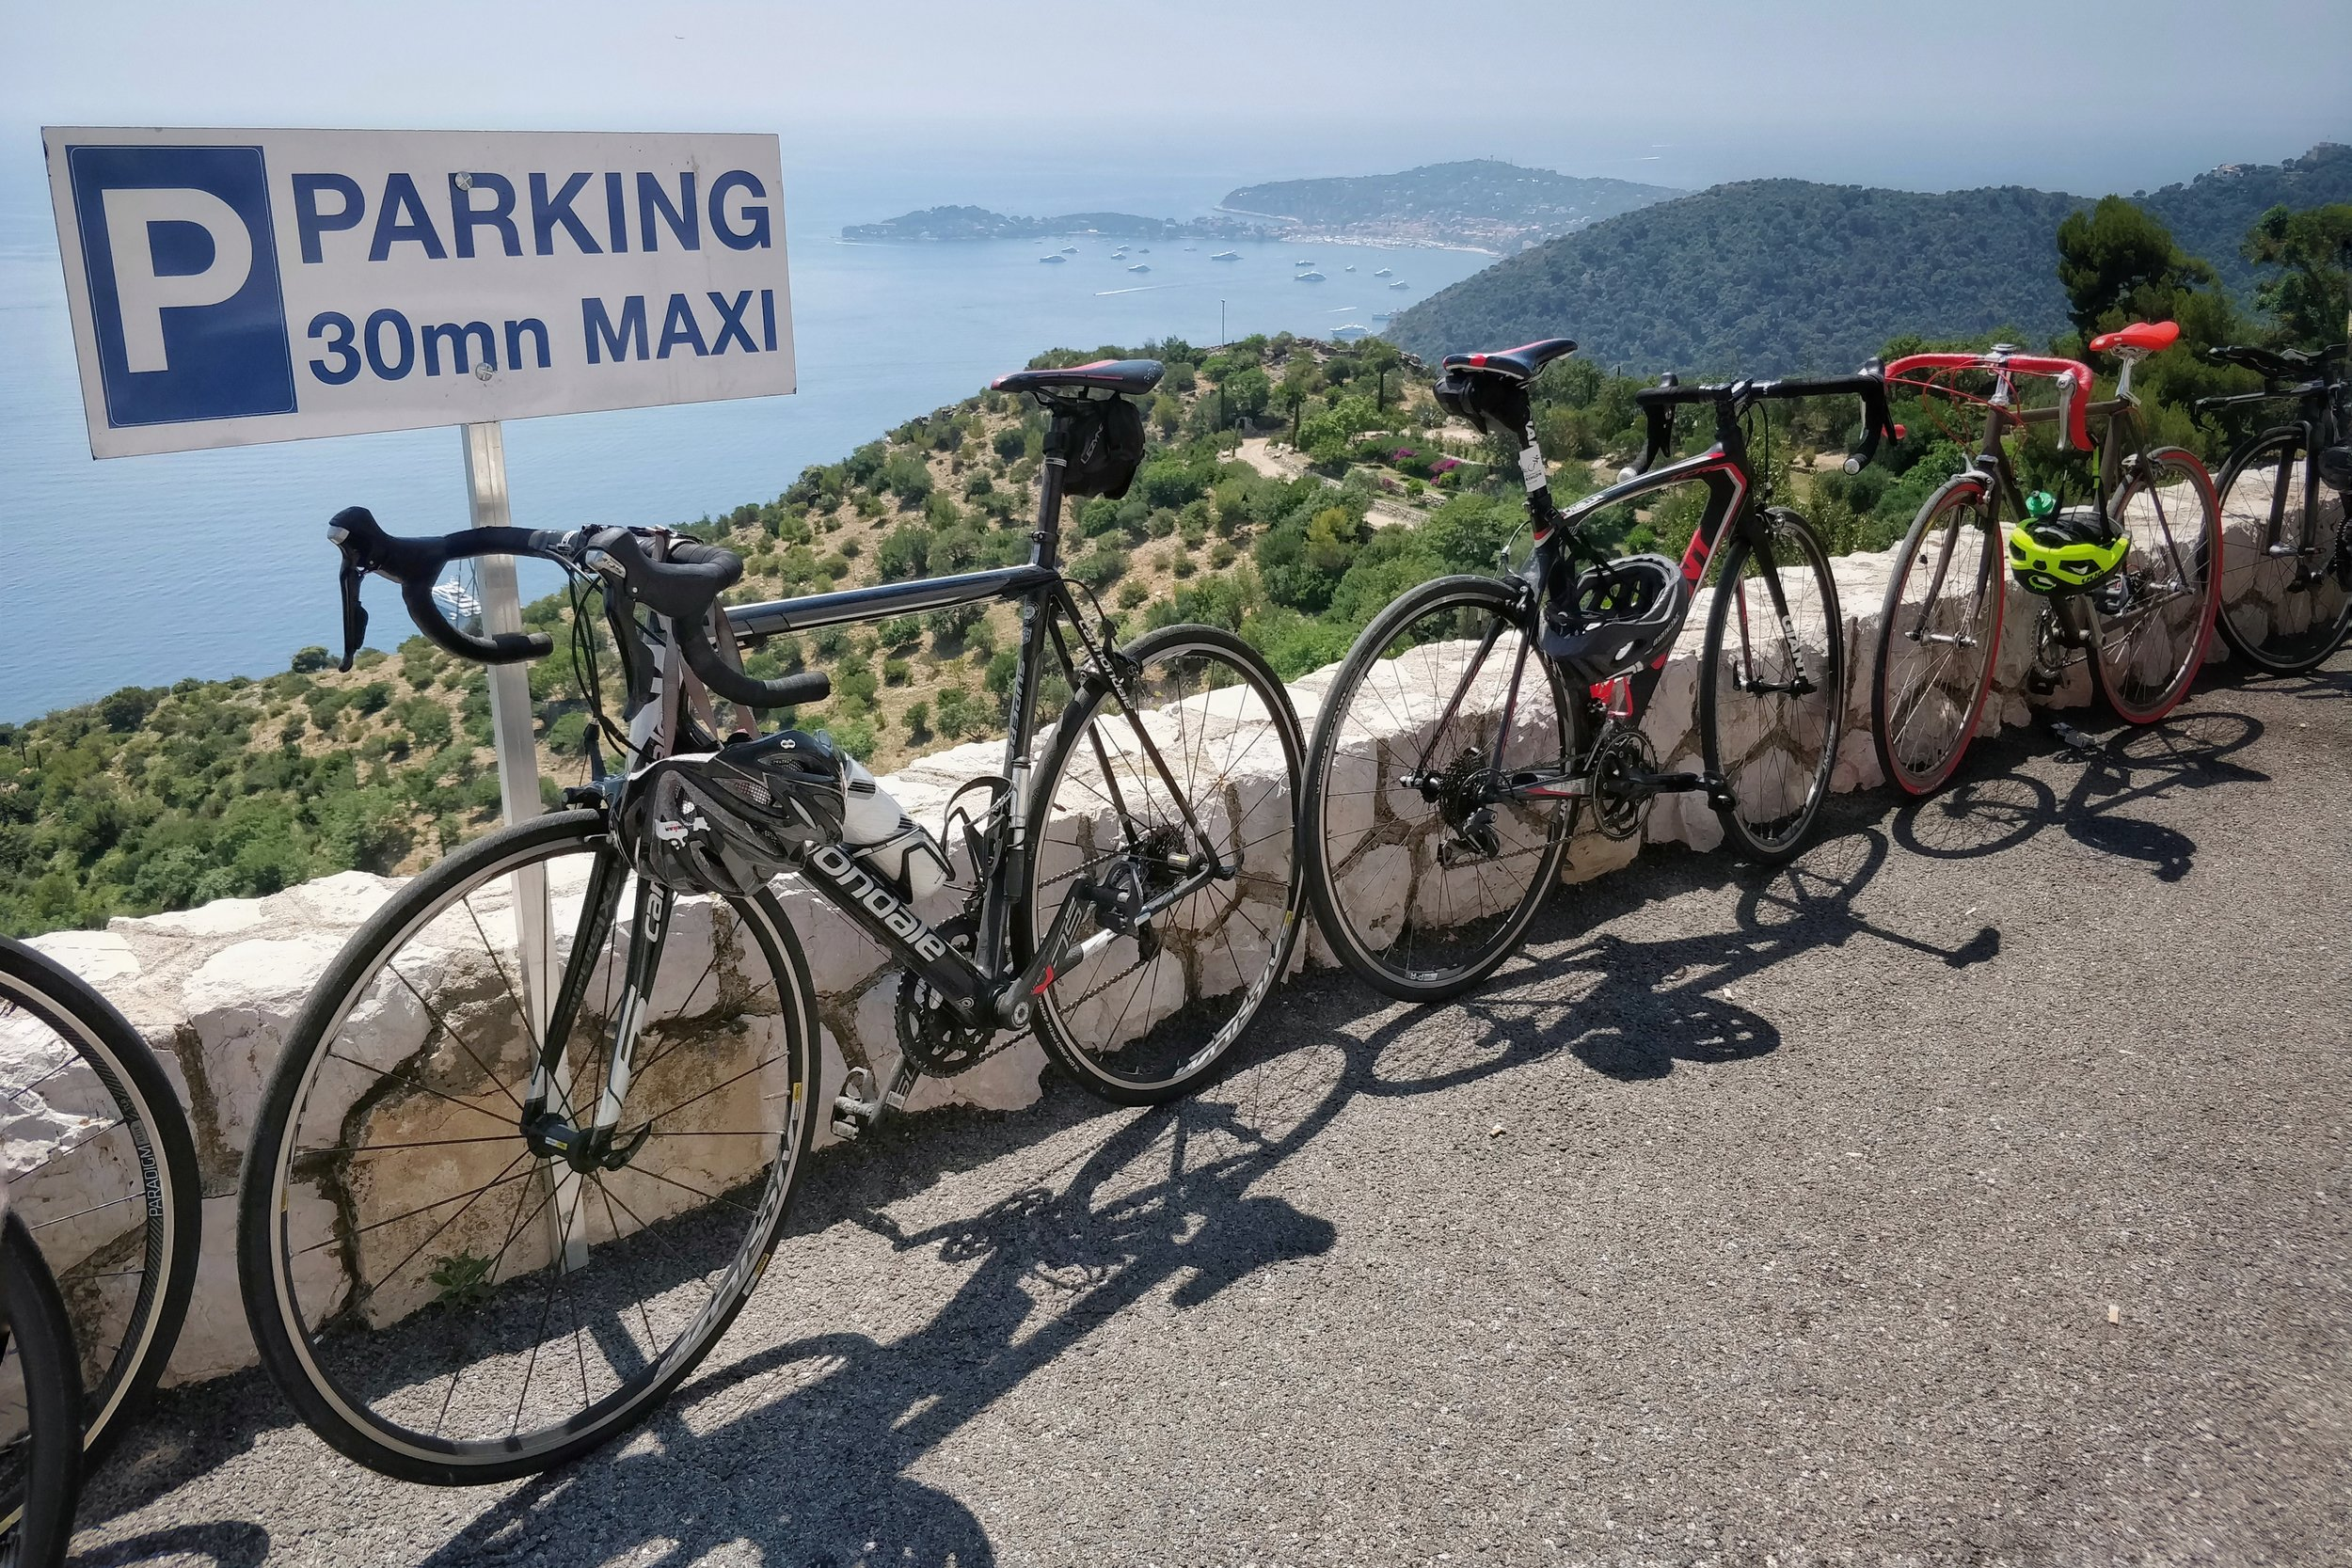 2018-07-05 MC Bike2Work Lunch Climb Ride Eze Copyright & Photo Ivan Blanco Vilar (31).jpeg